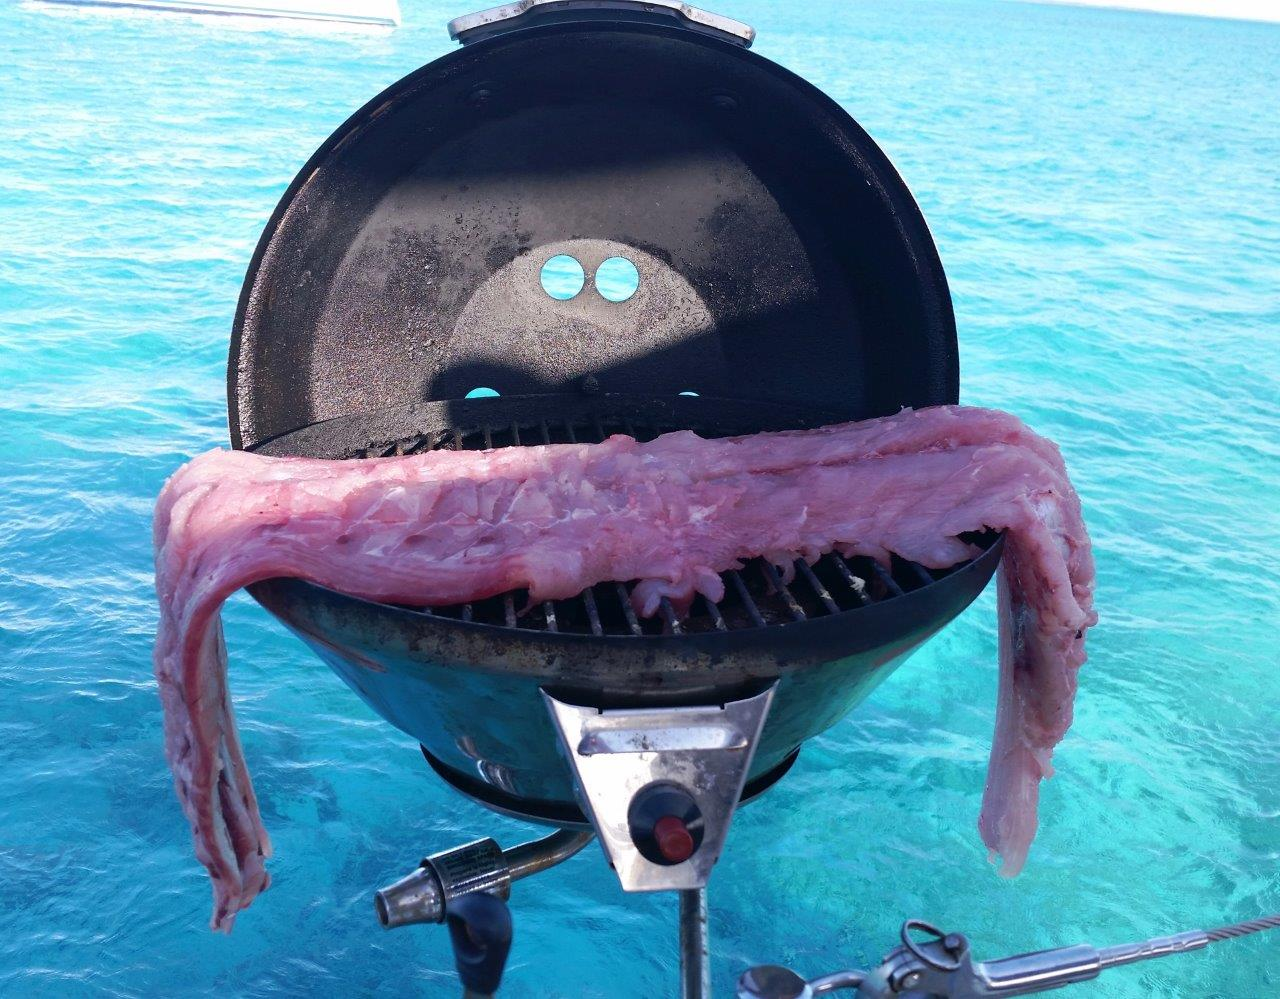 We're going to need a bigger grill.